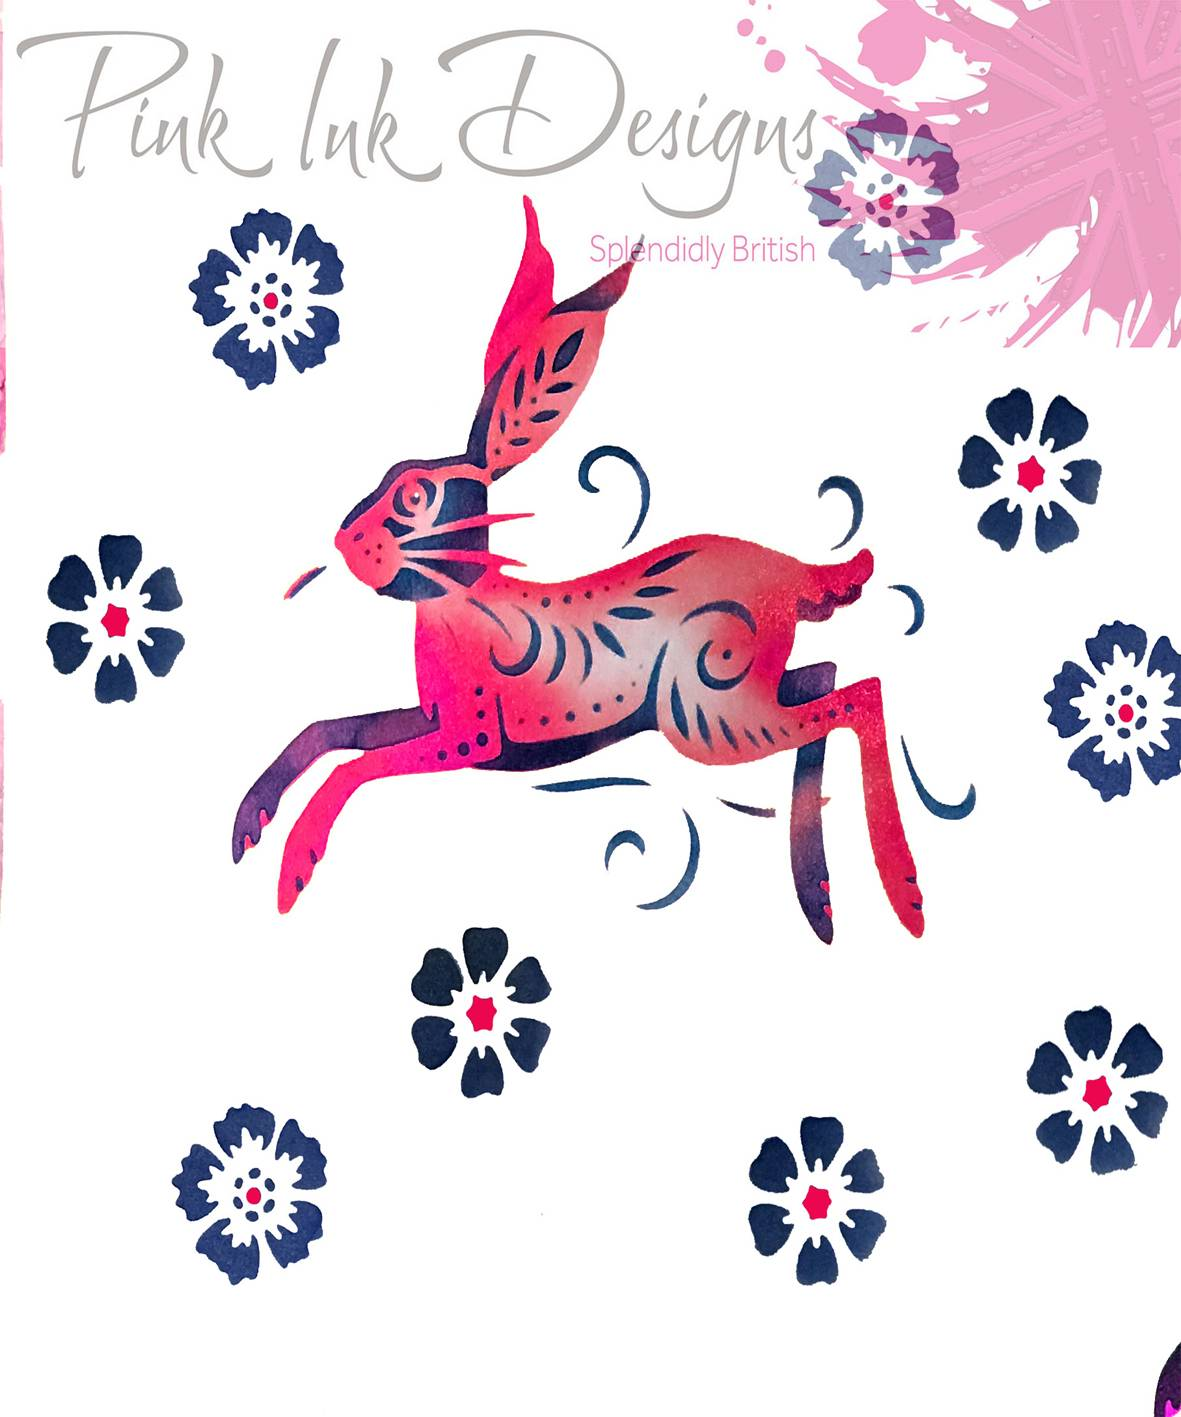 pink ink designs layered stencils hare sample